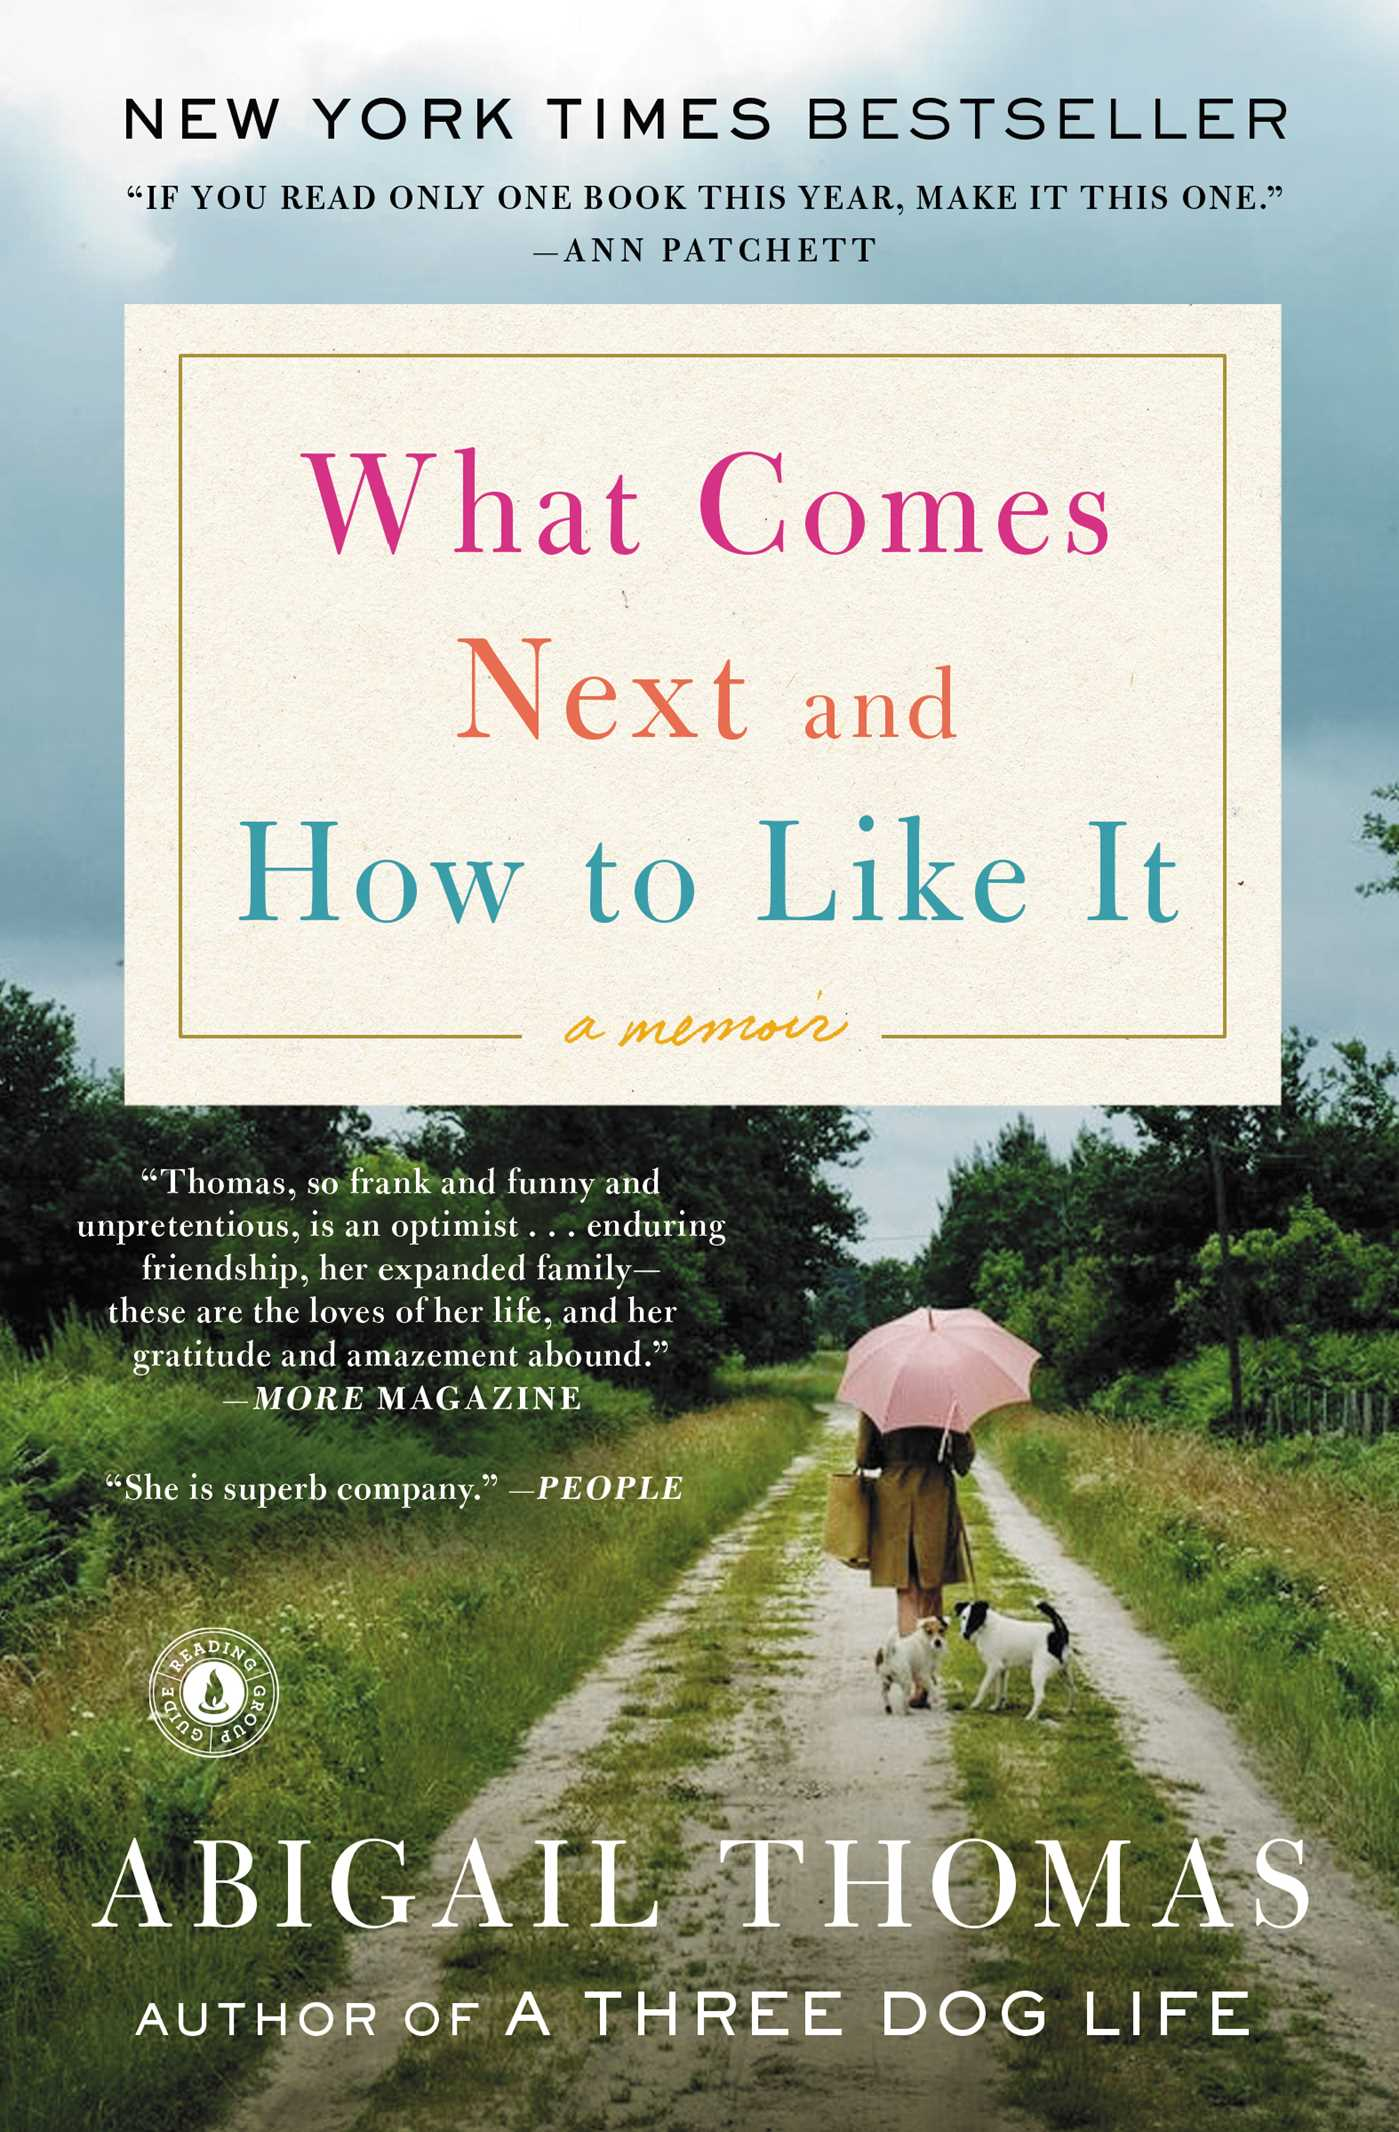 What comes next and how to like it 9781476785066 hr